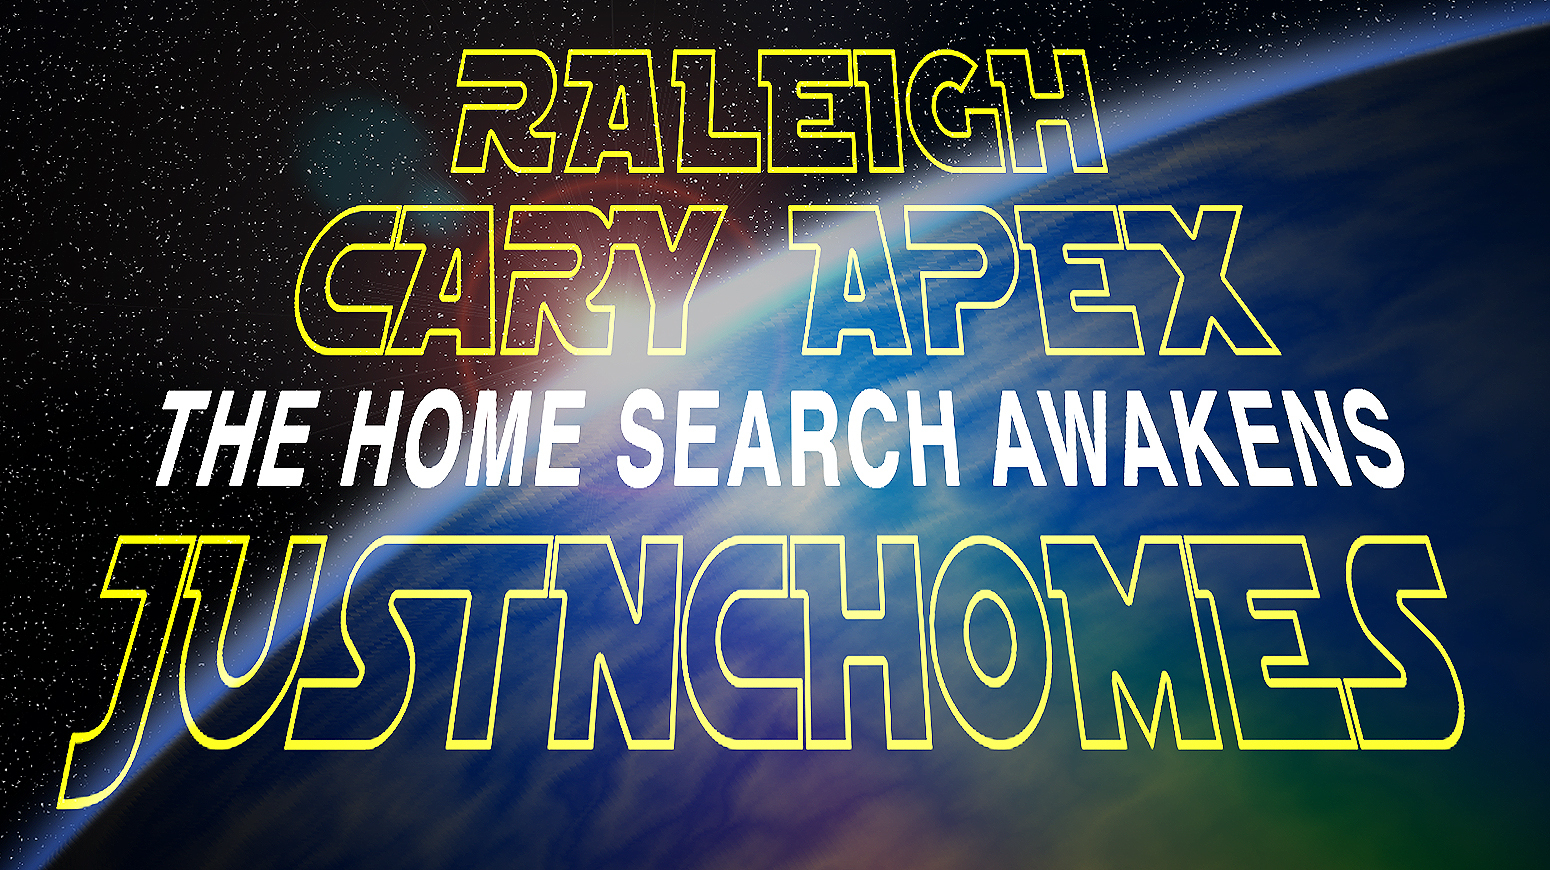 May the 4th Be With You In Your Raleigh, Cary, Apex Area Home Search!